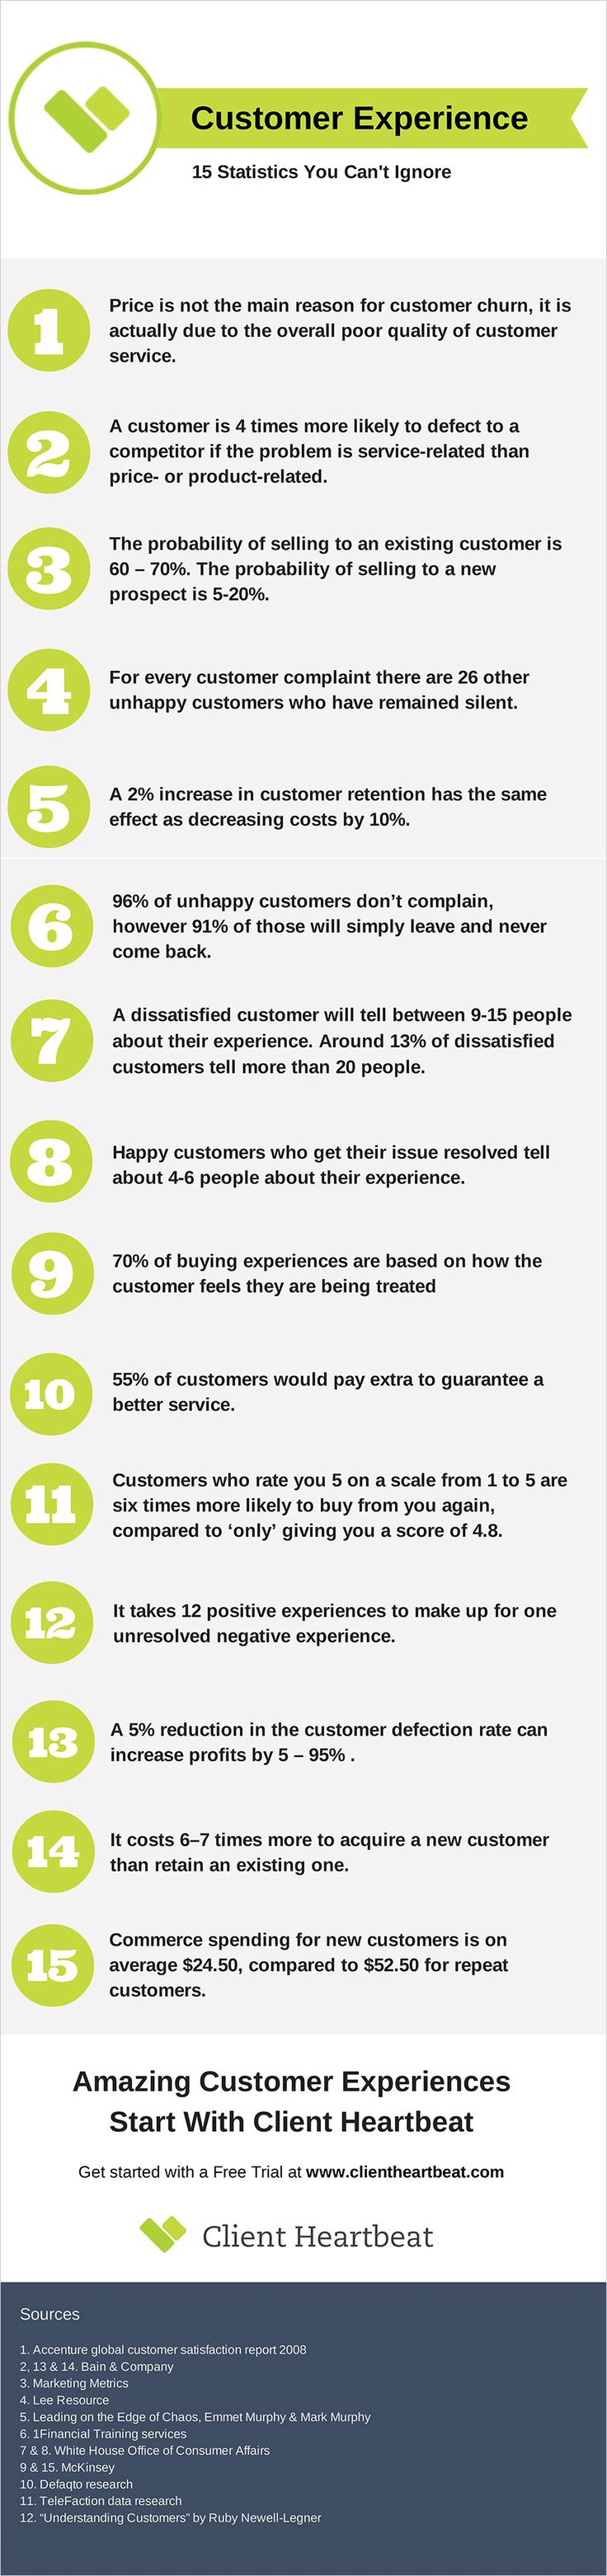 best customer service quotes customer service 17 best customer service quotes customer service customer quotes and customer experience quotes